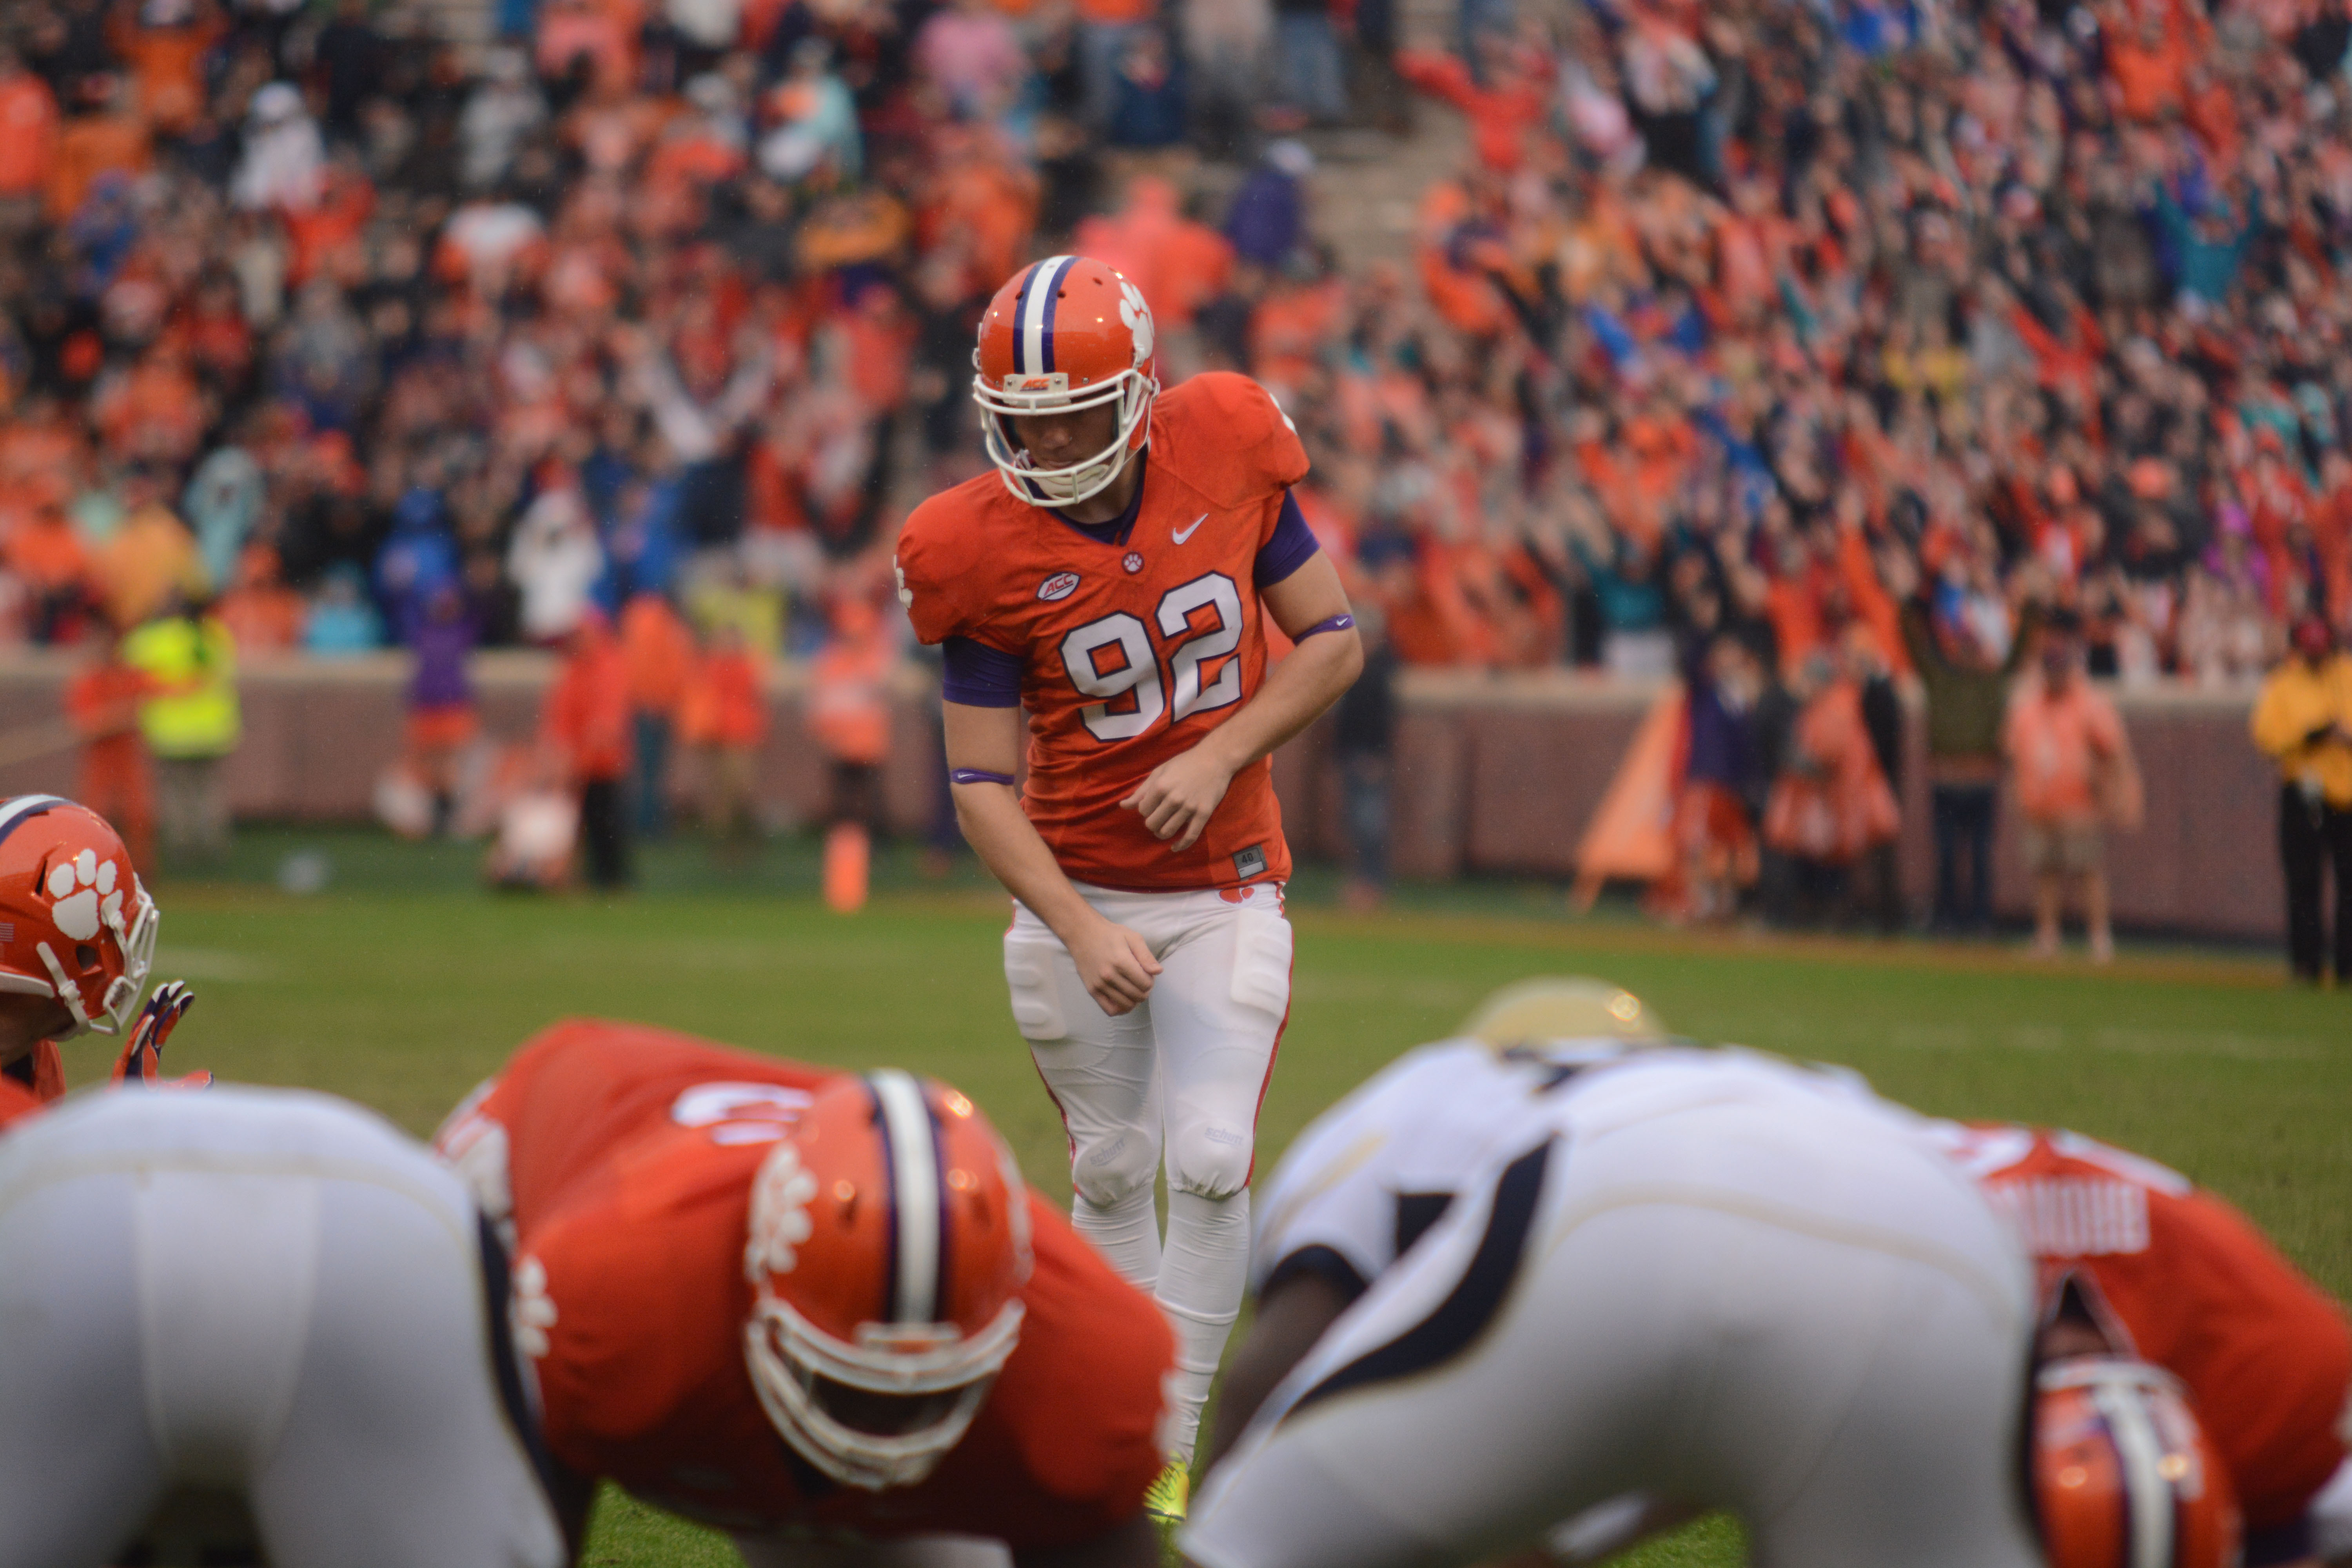 Huegel Semifinalist for Groza Award